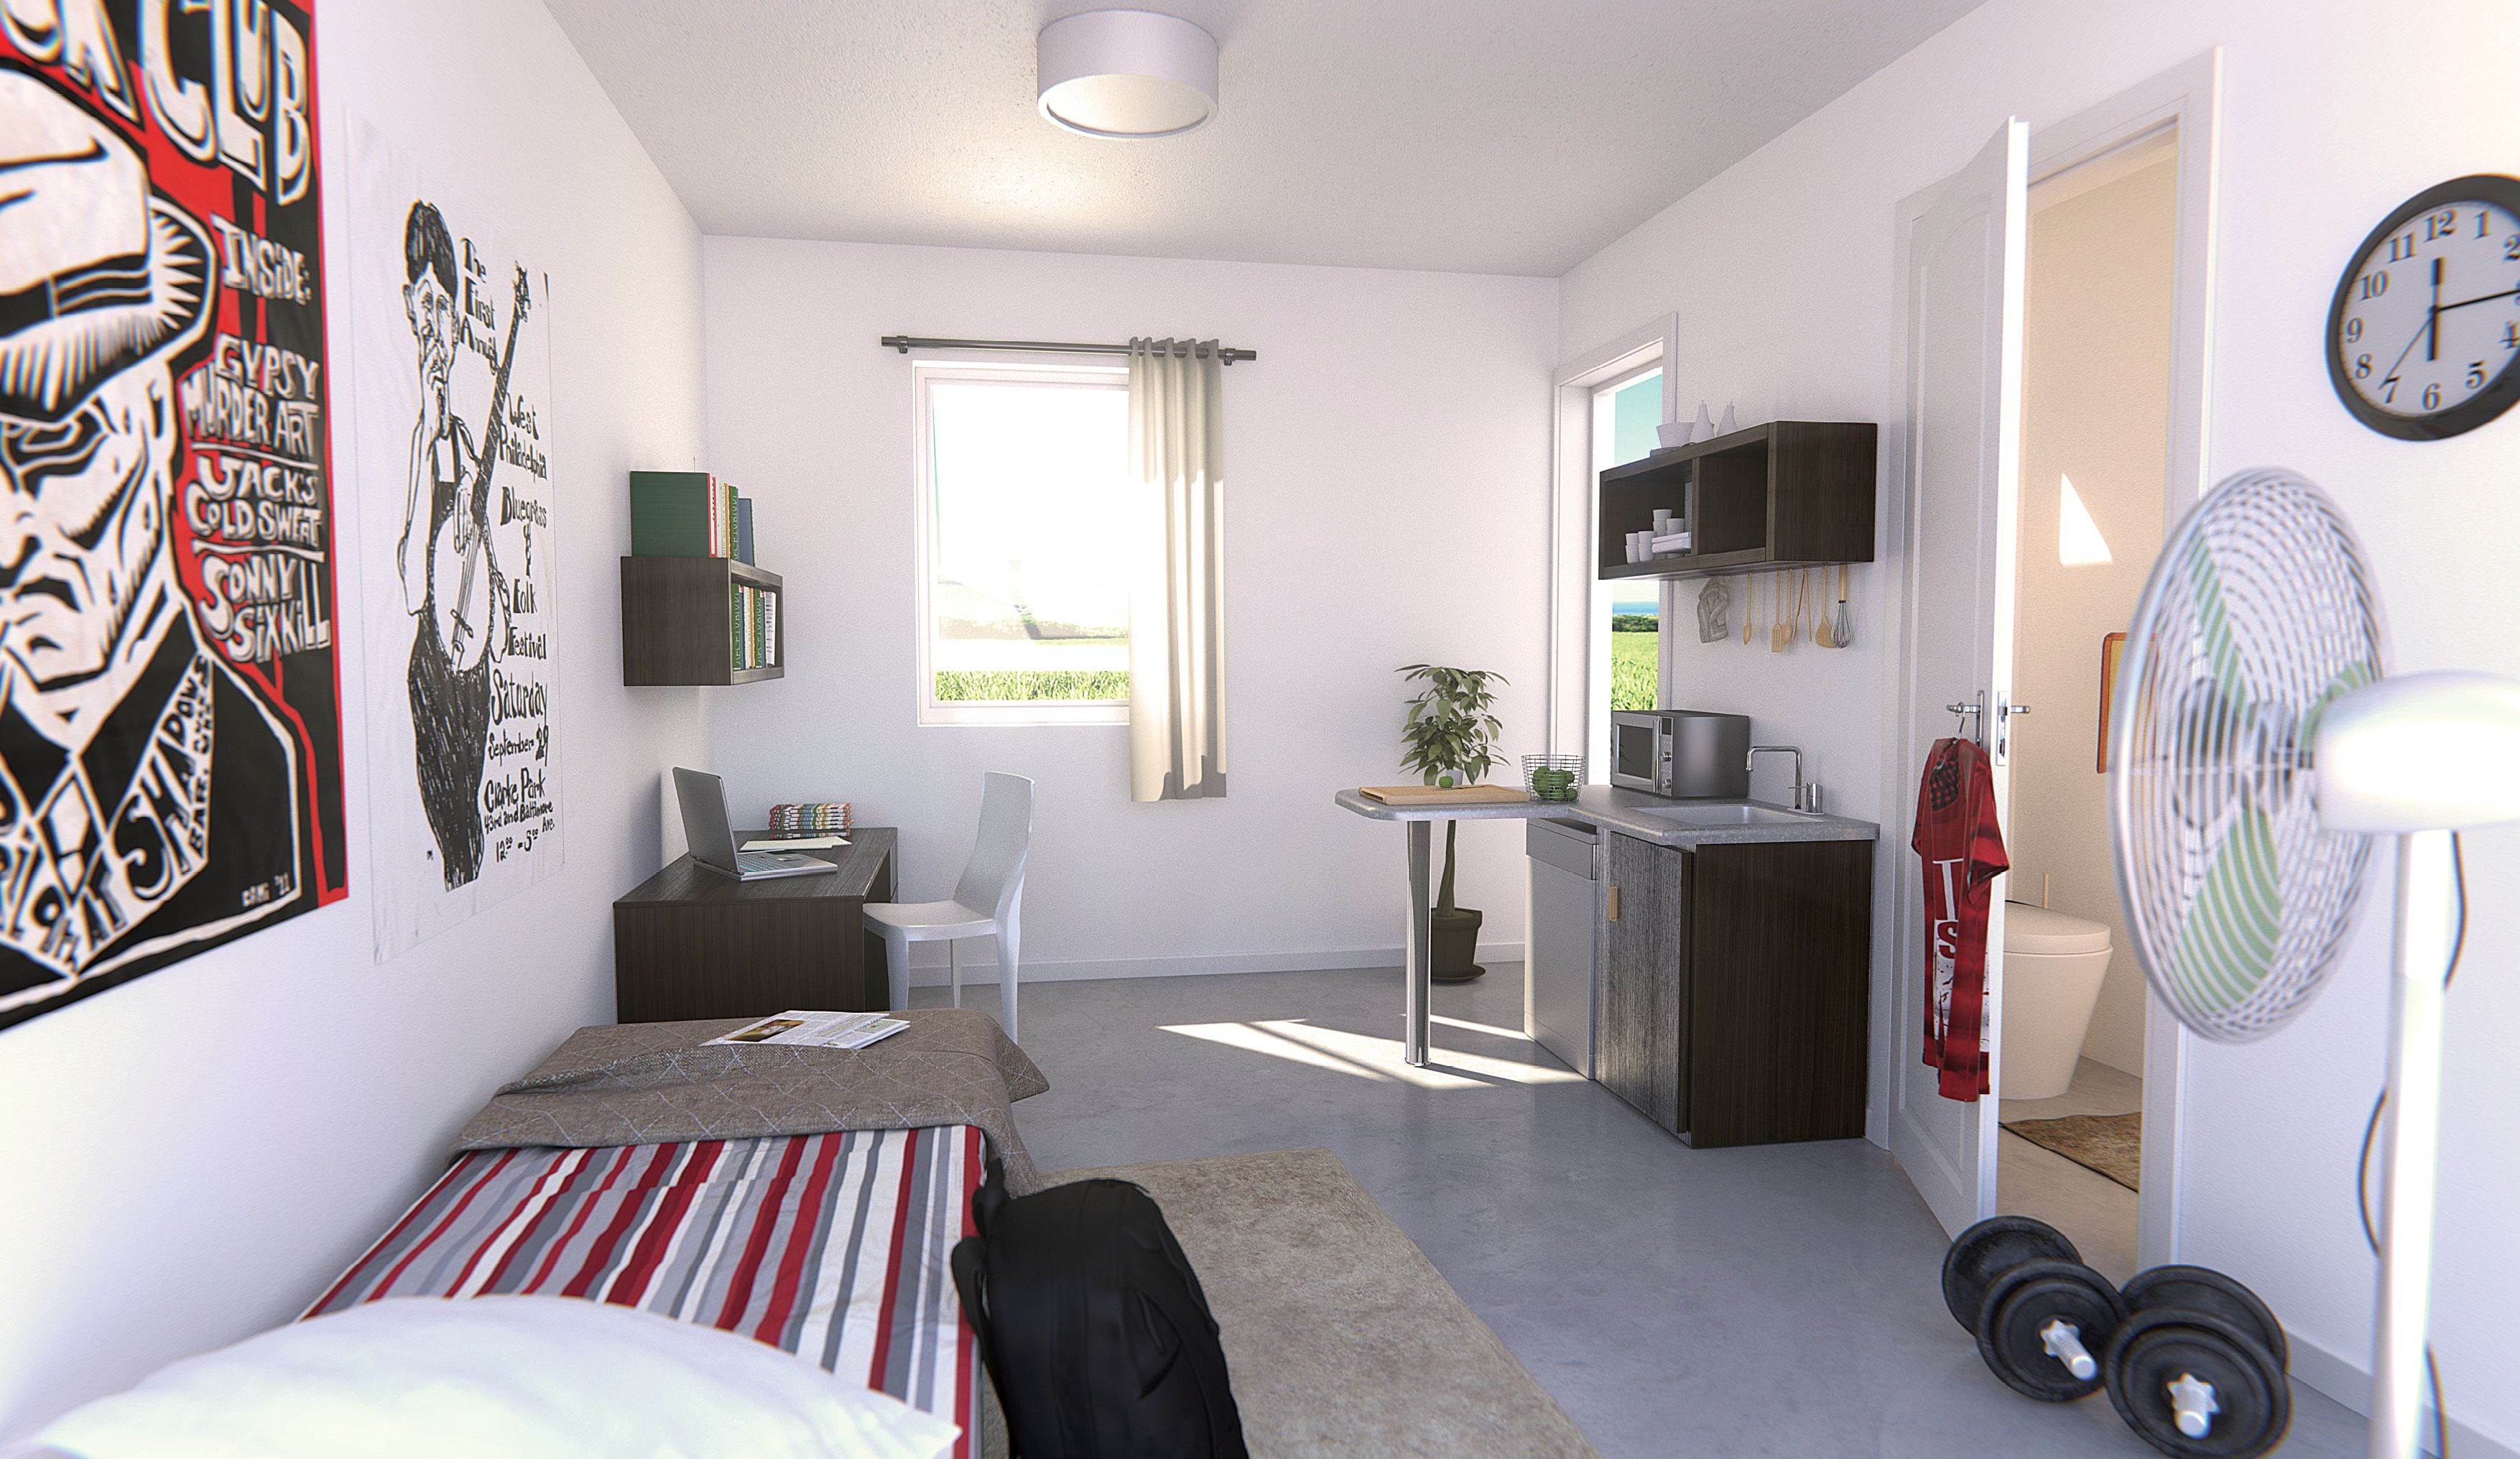 Studio bedroom with bathroom & kitchenette